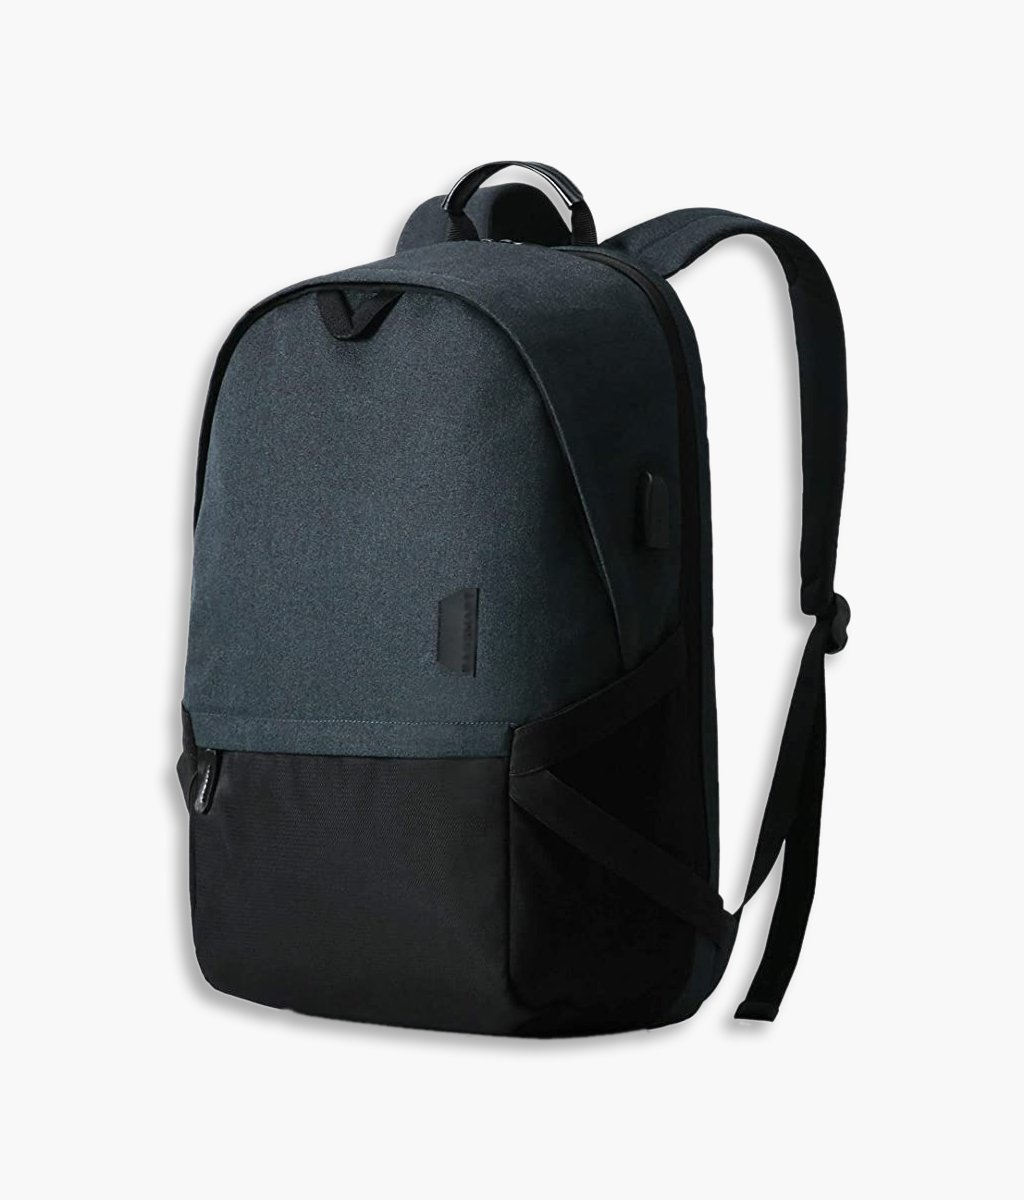 Travel Backpack with USB Charging Port